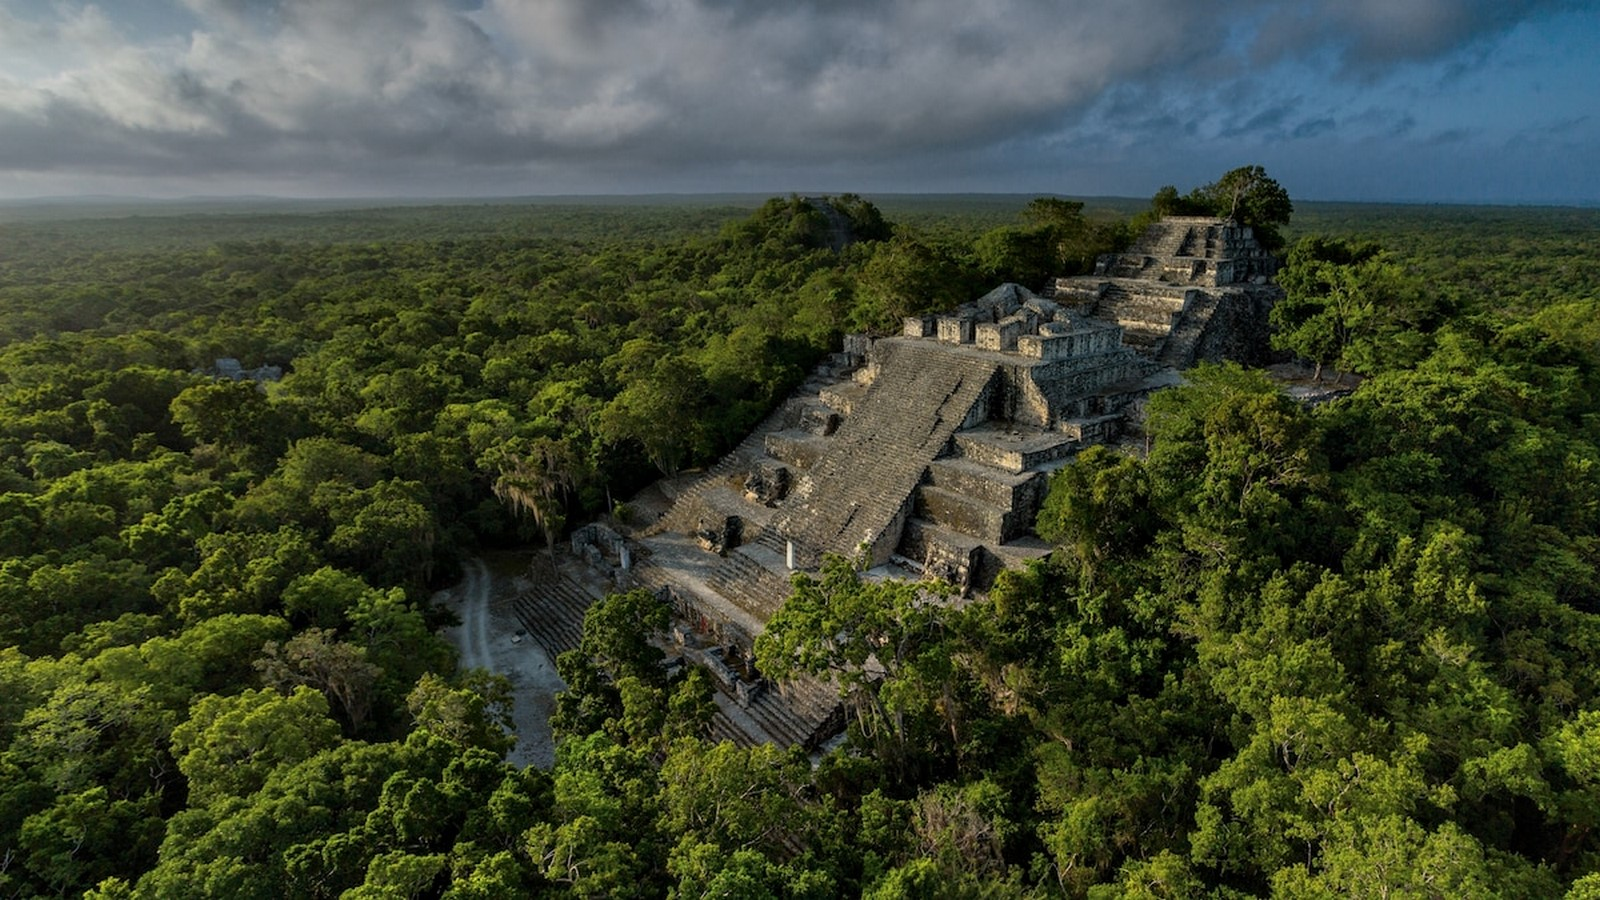 Youtube for Architects: Lost World of the Maya by National Geographic - Sheet1